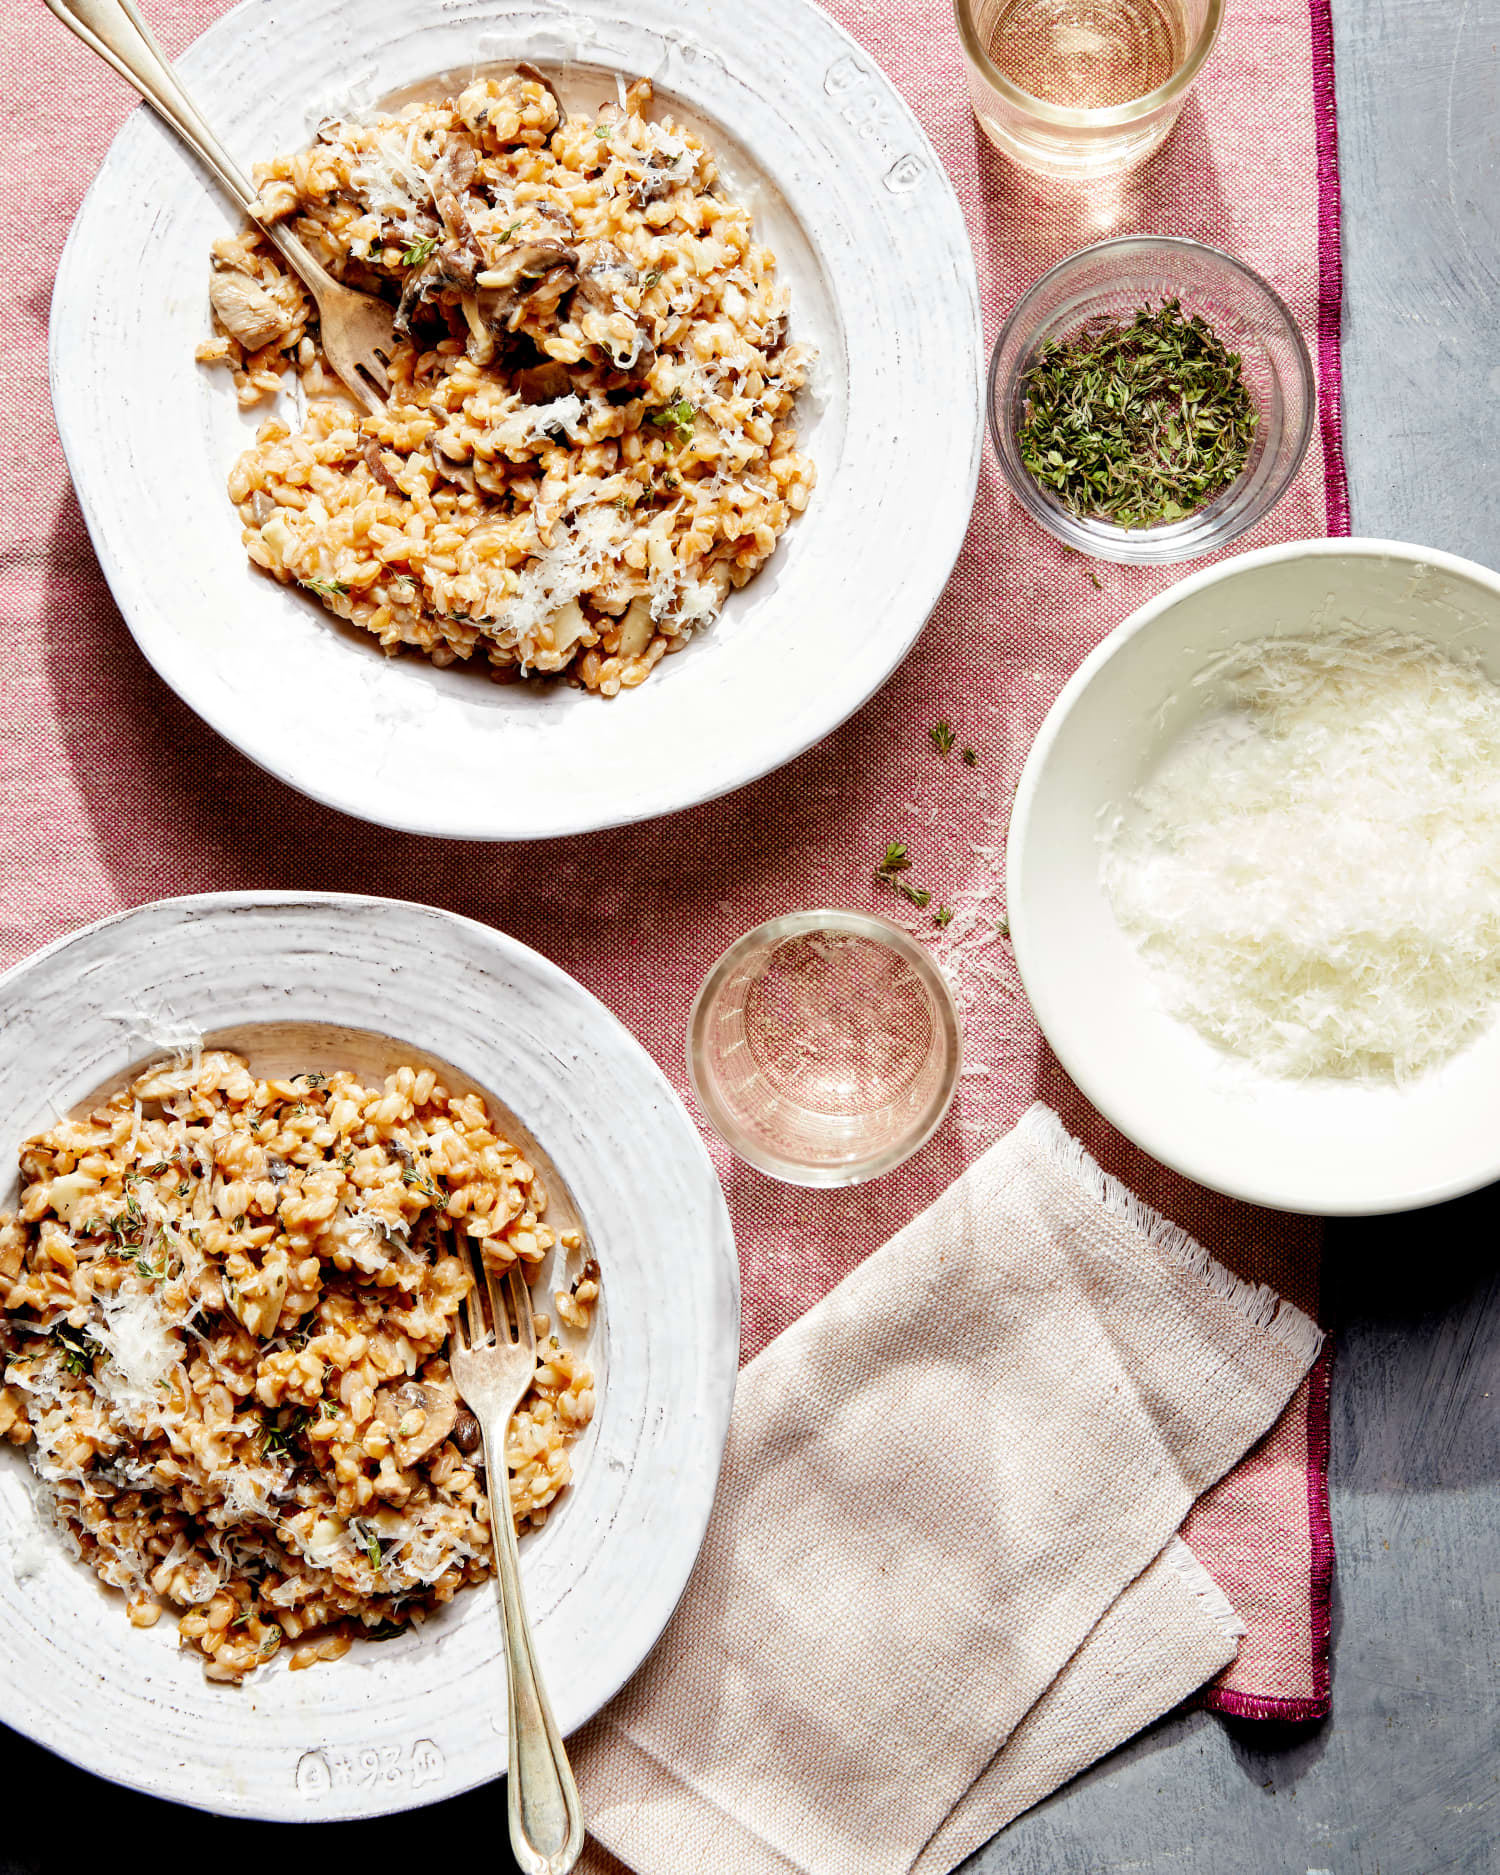 This Garlicky, Mushroom-Packed Twist on Risotto Is Deeply Comforting